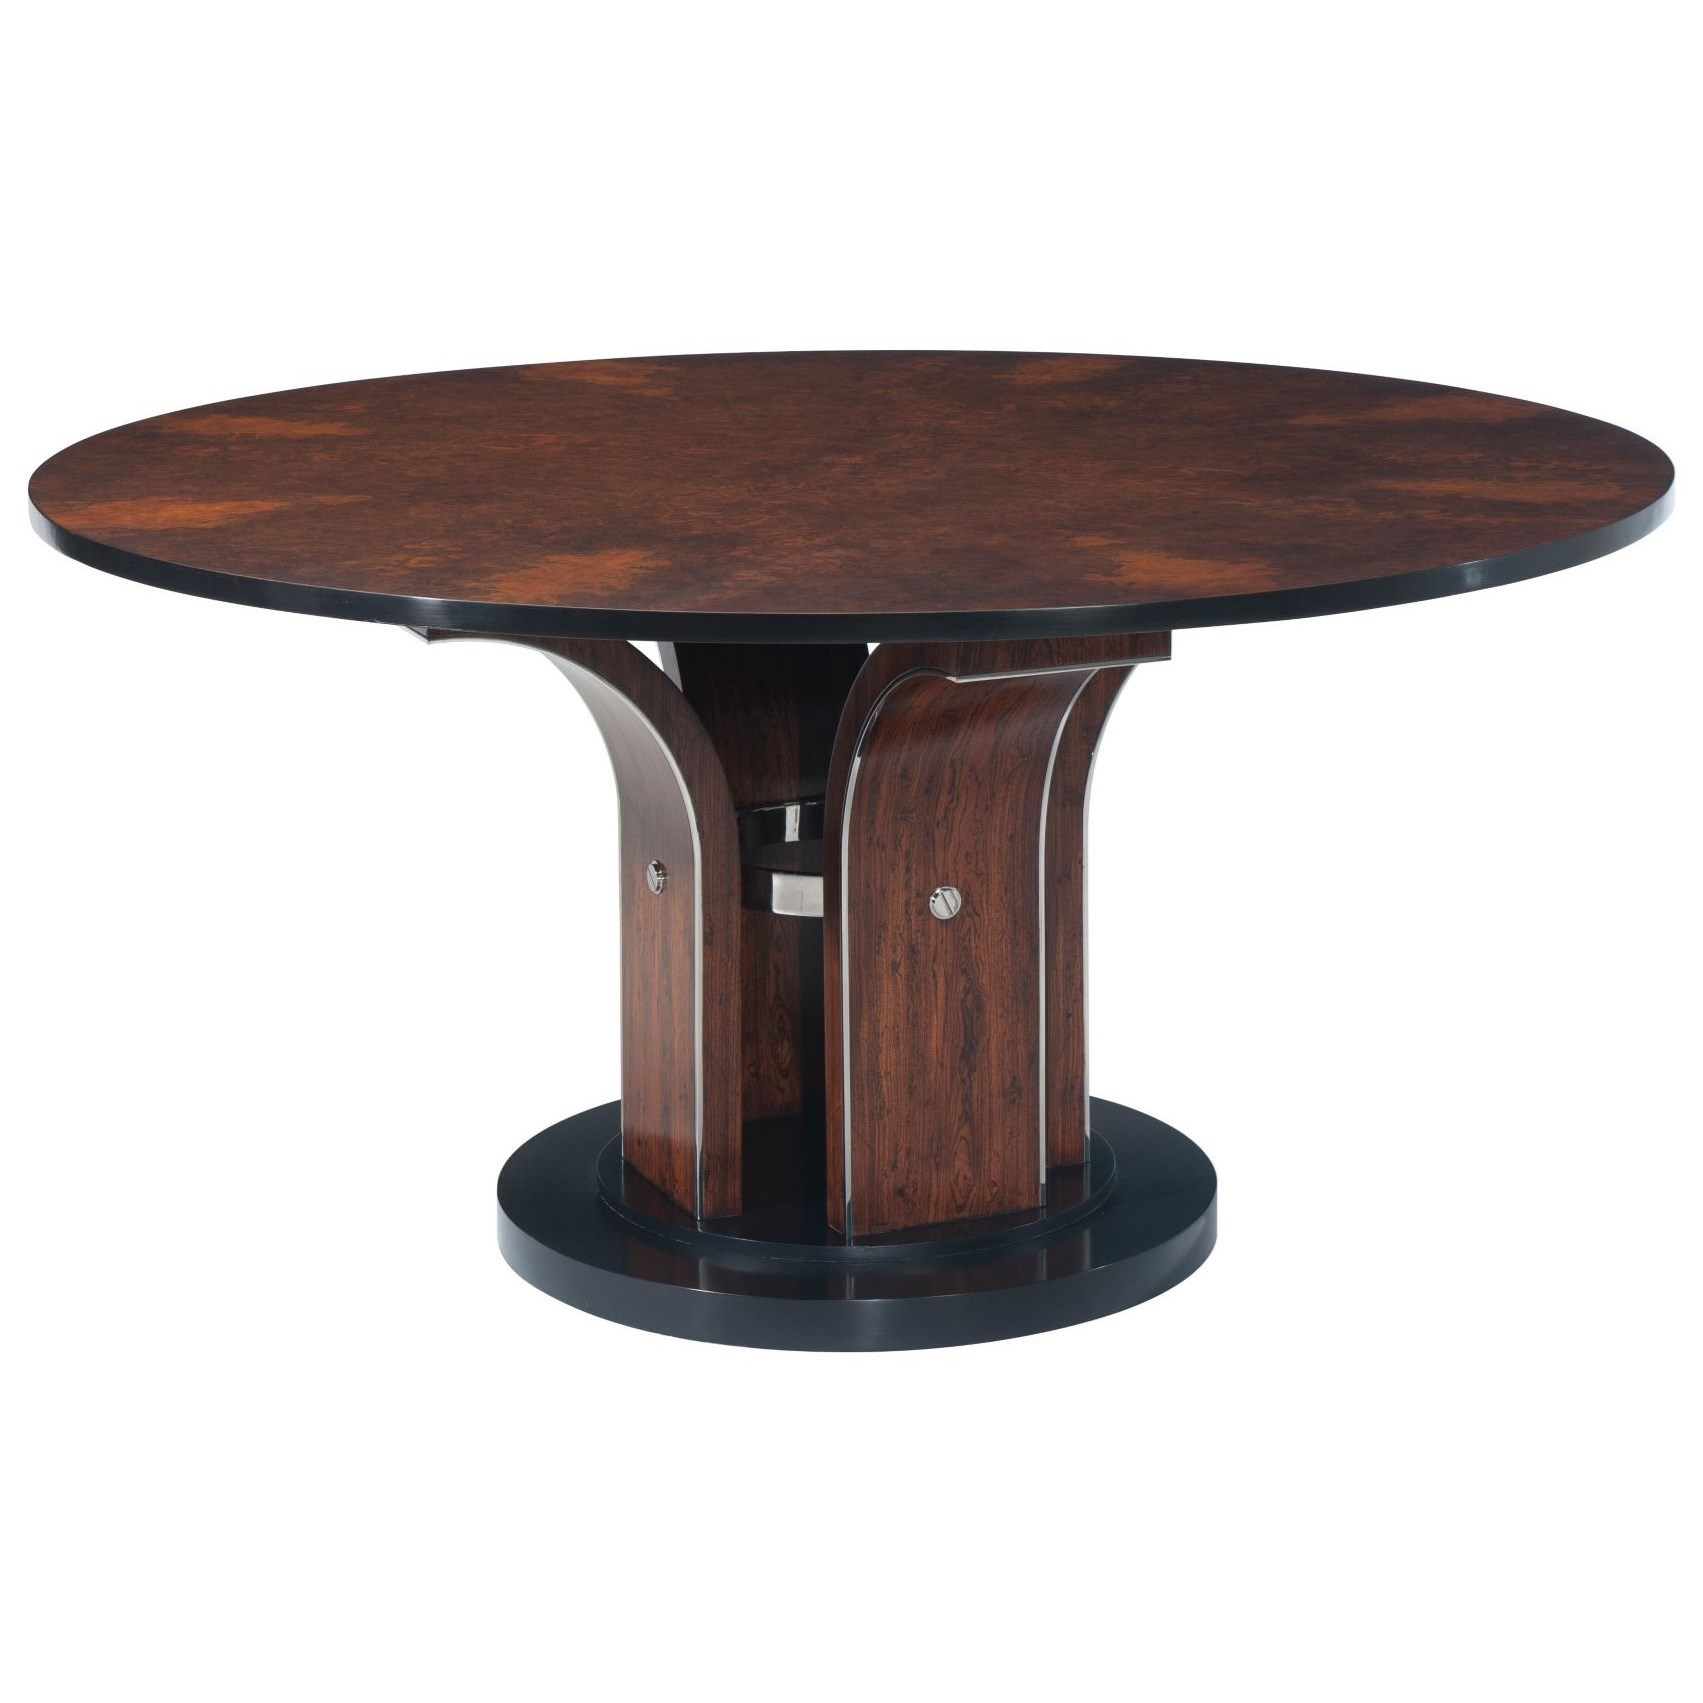 Vanucci Eclectics Josce Center Table by Theodore Alexander at Baer's Furniture